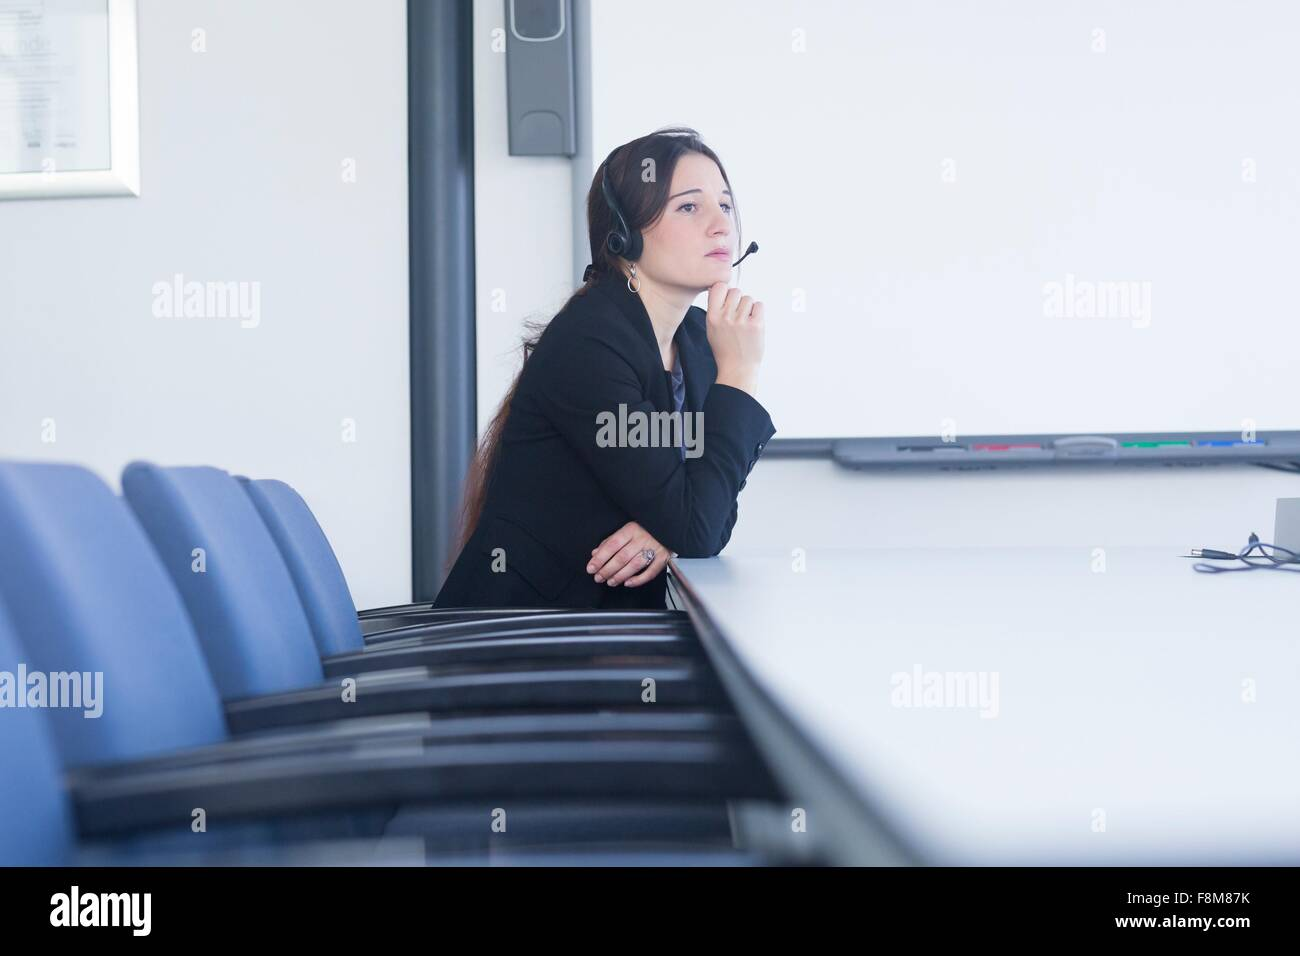 Telephonist contemplating in meeting room Stock Photo